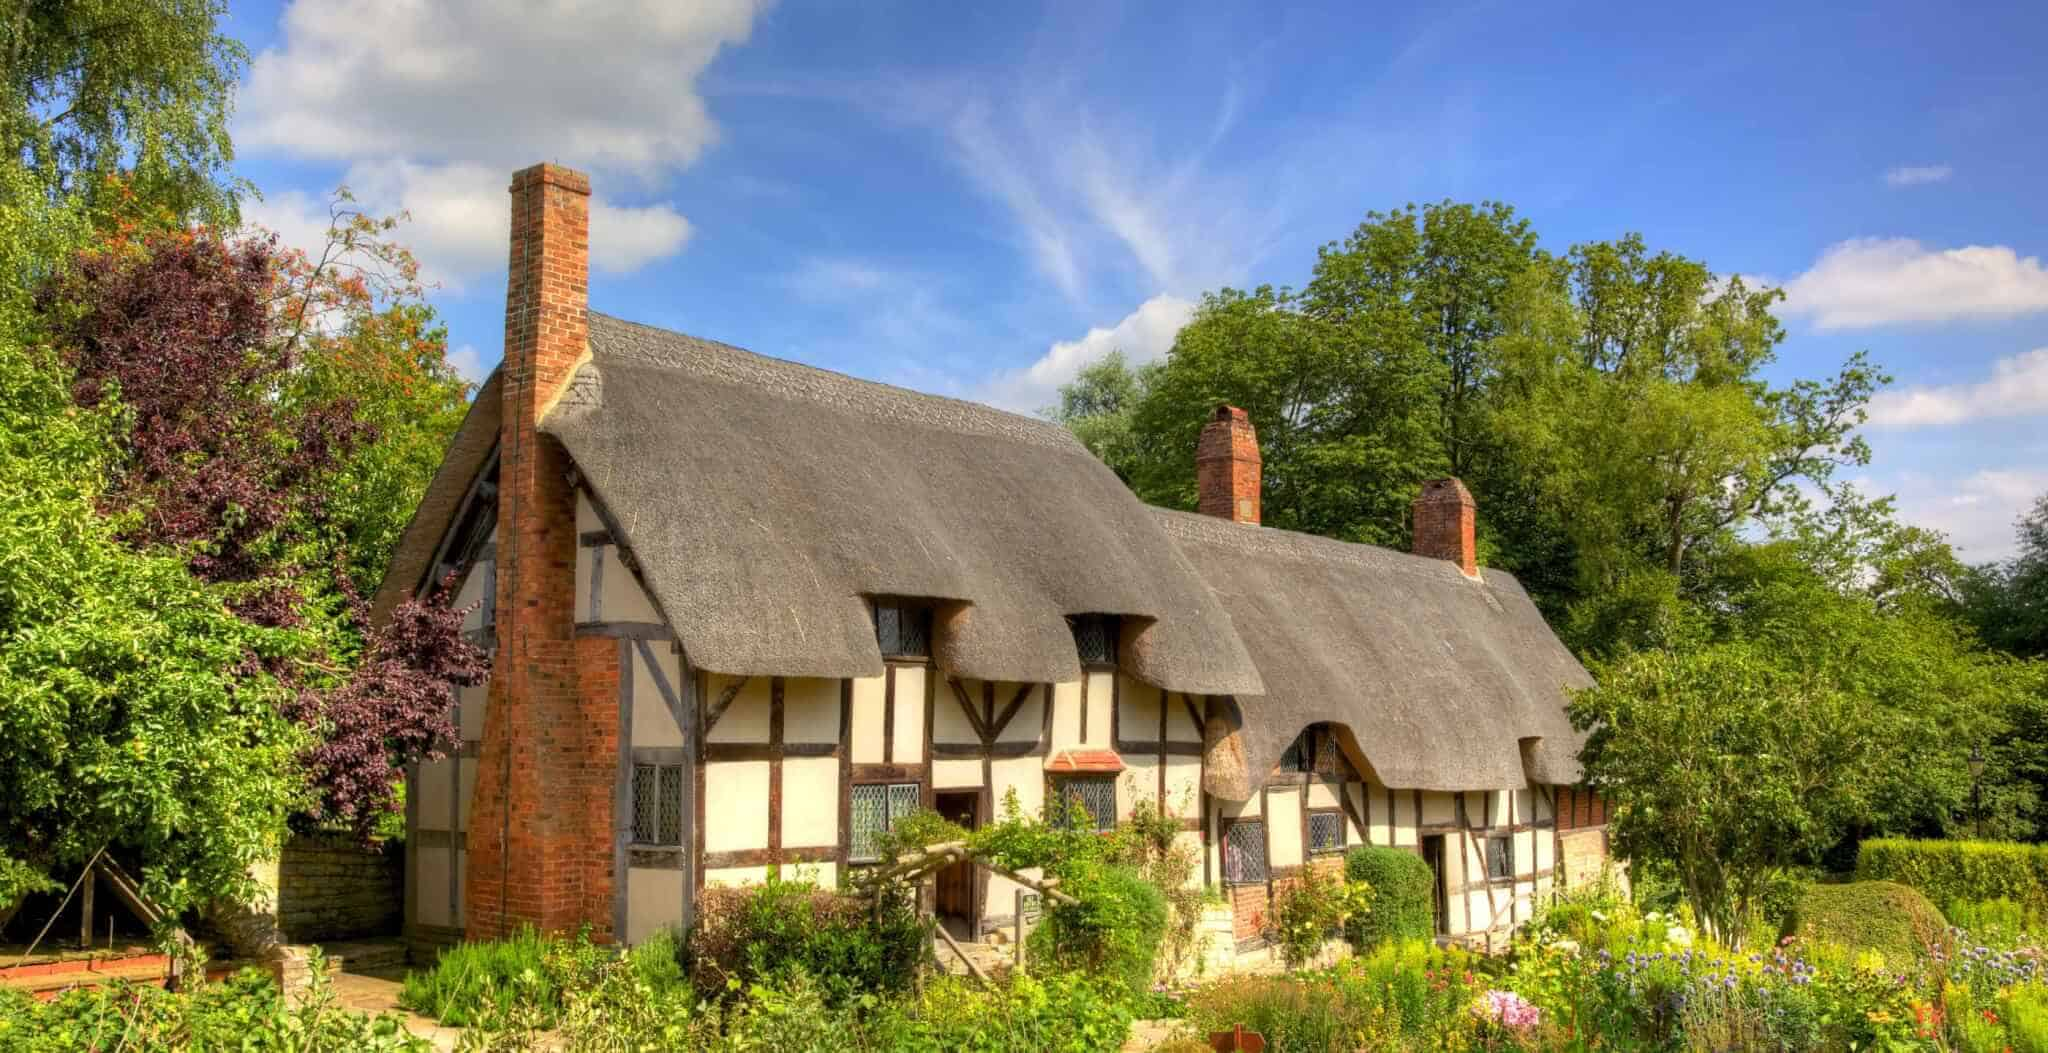 Shakespeare's Stratford–upon–Avon Full Day Tour